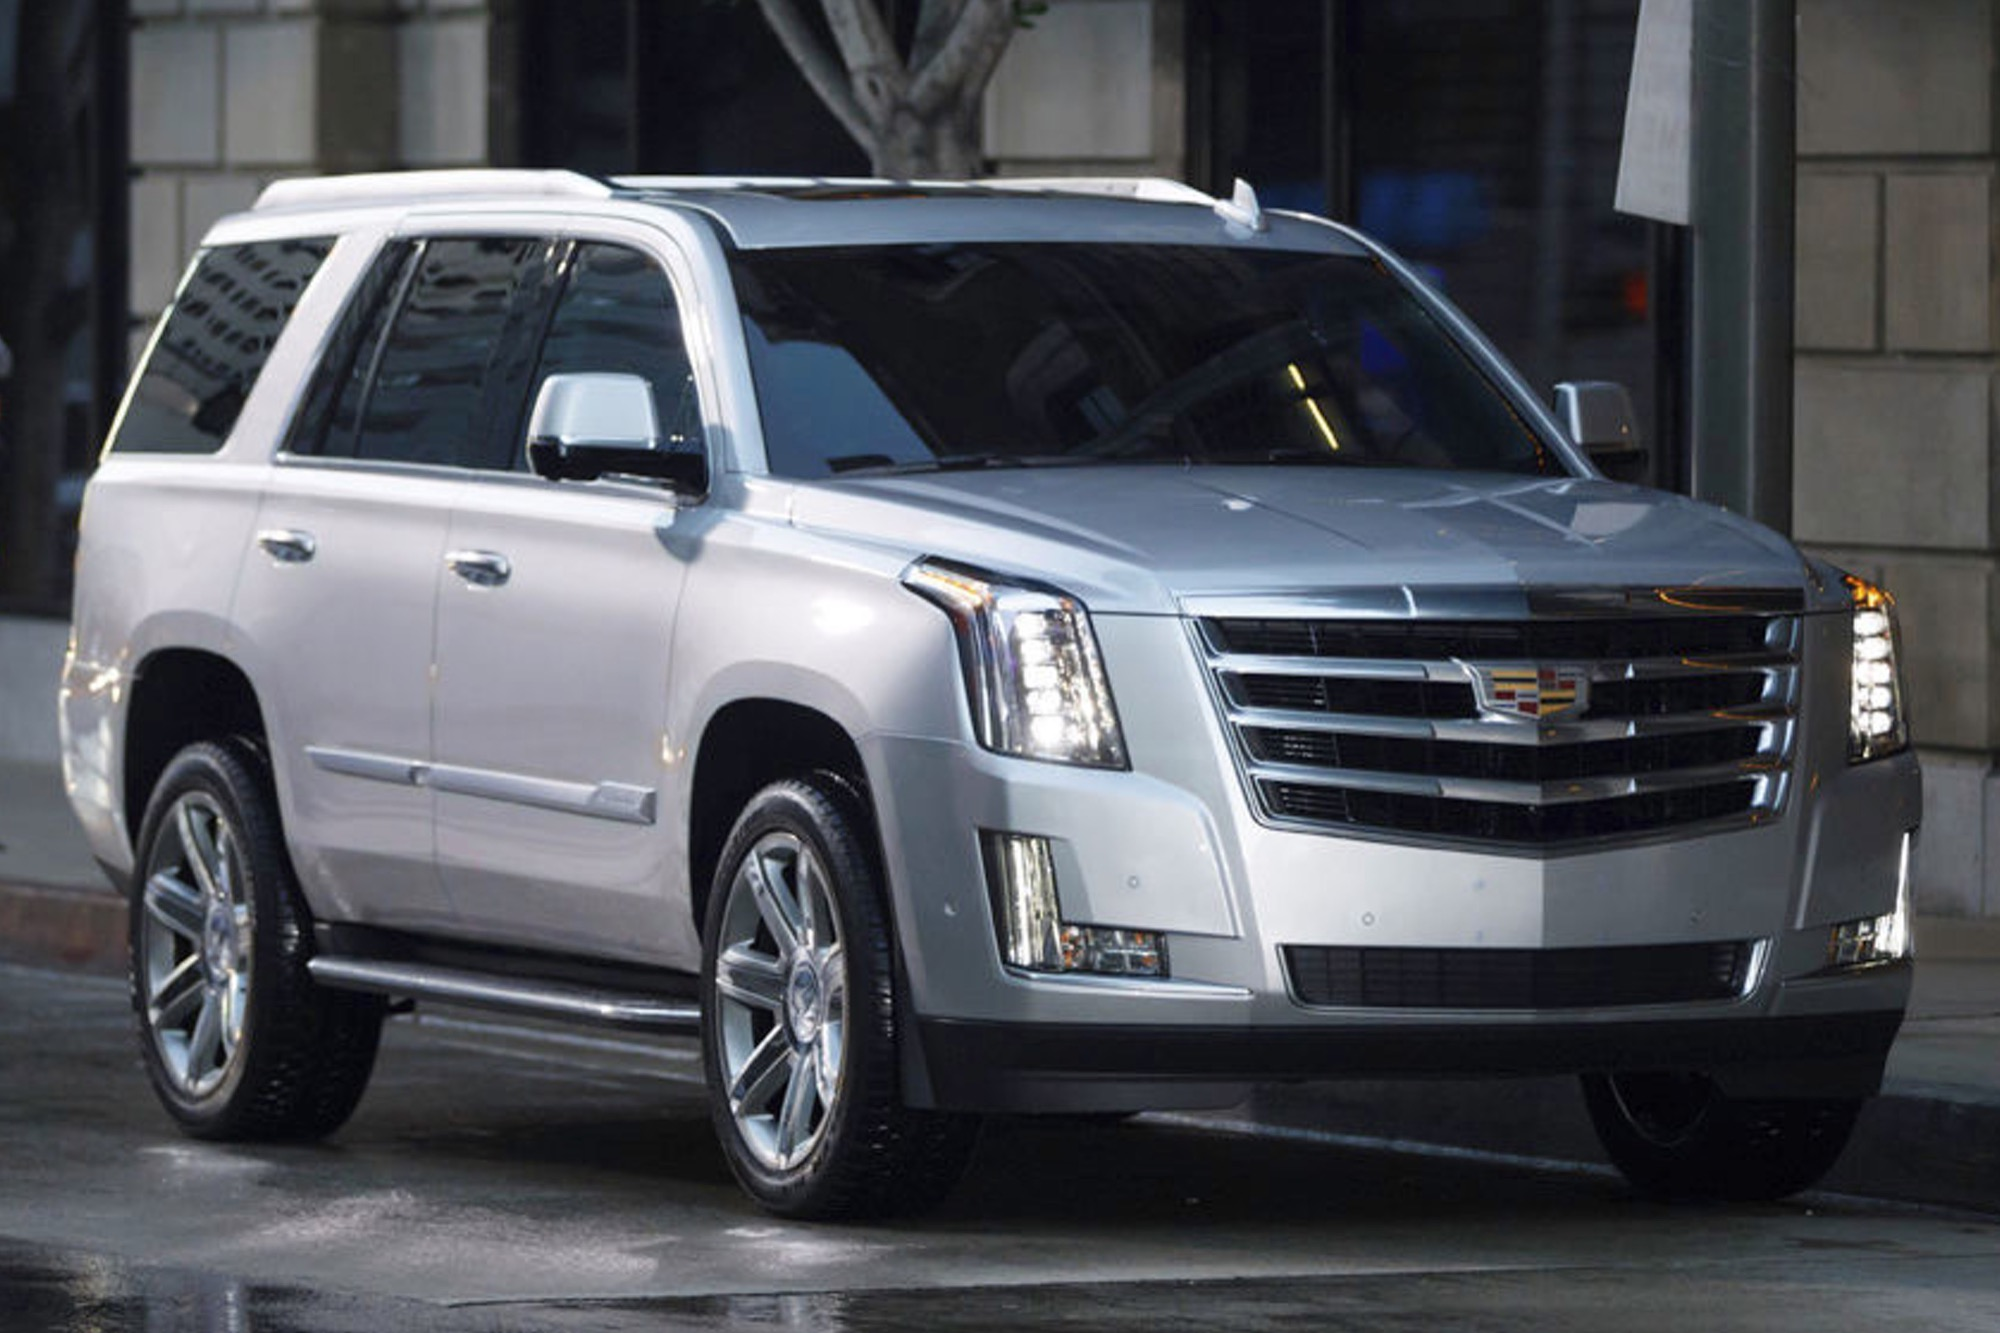 31 Best Review Price Of 2020 Cadillac Escalade Pictures by Price Of 2020 Cadillac Escalade